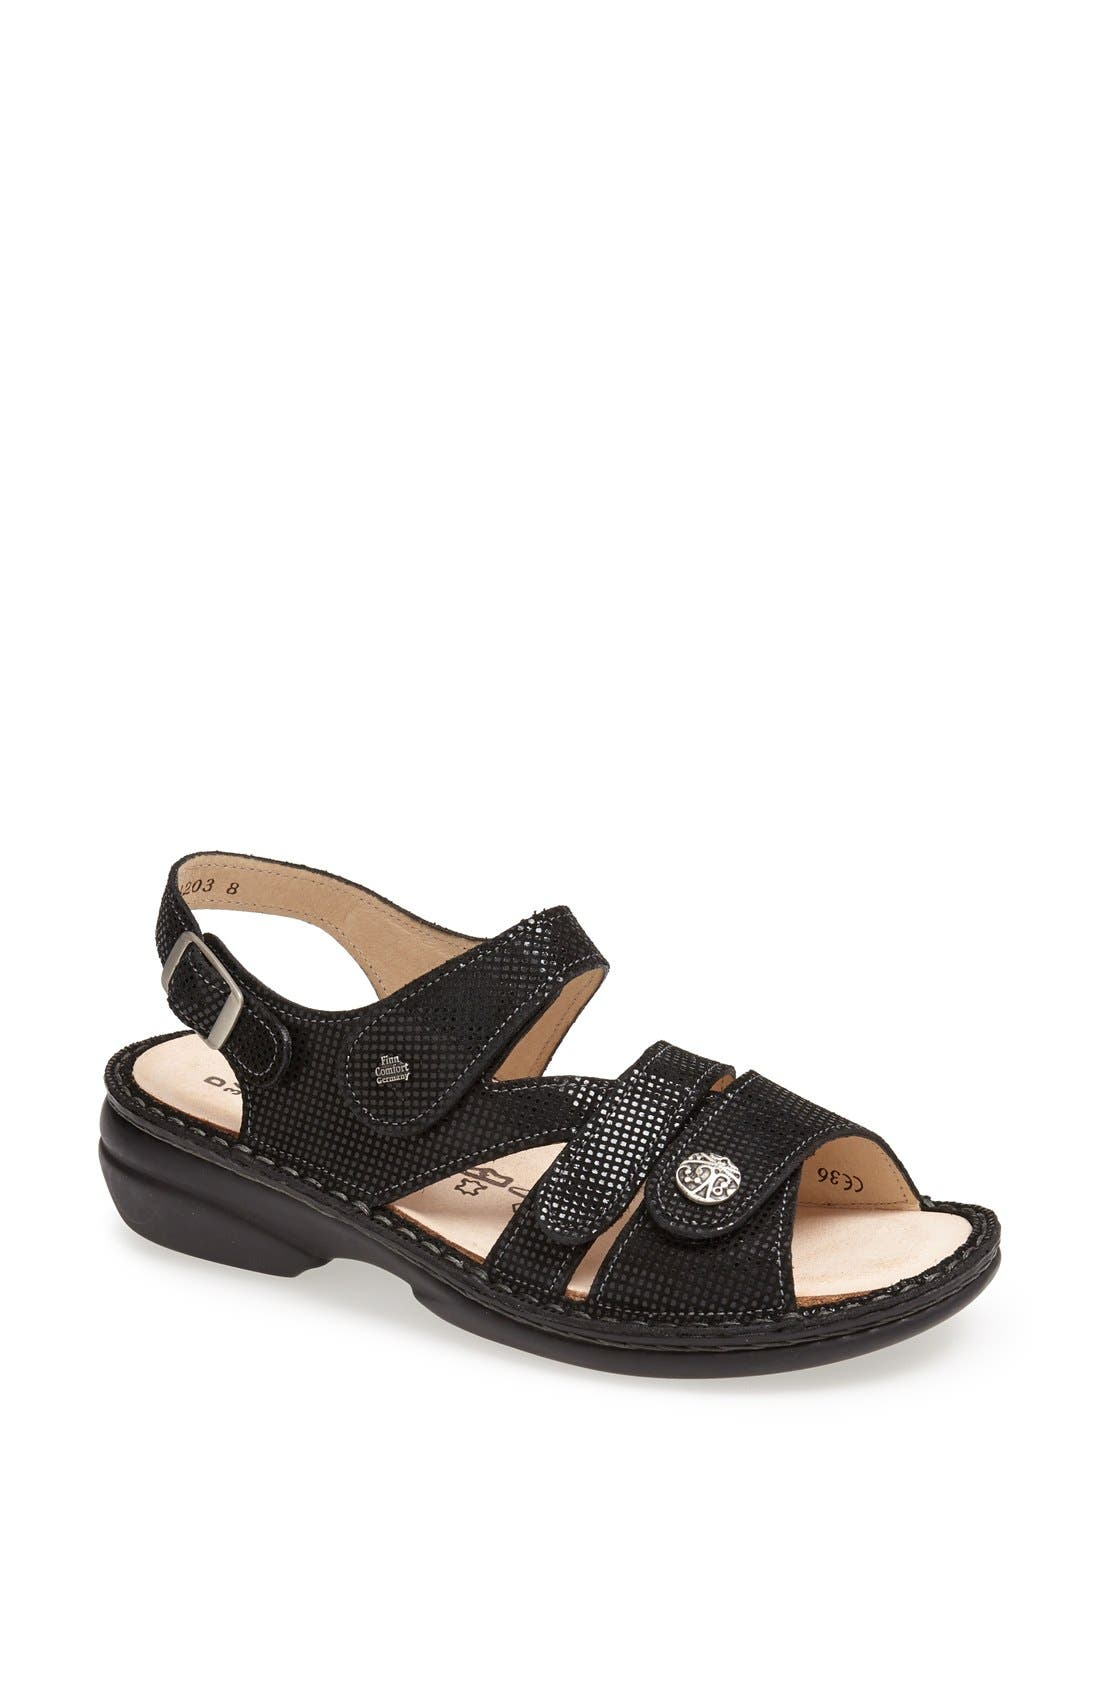 'Gomera' Sandal,                         Main,                         color, Black